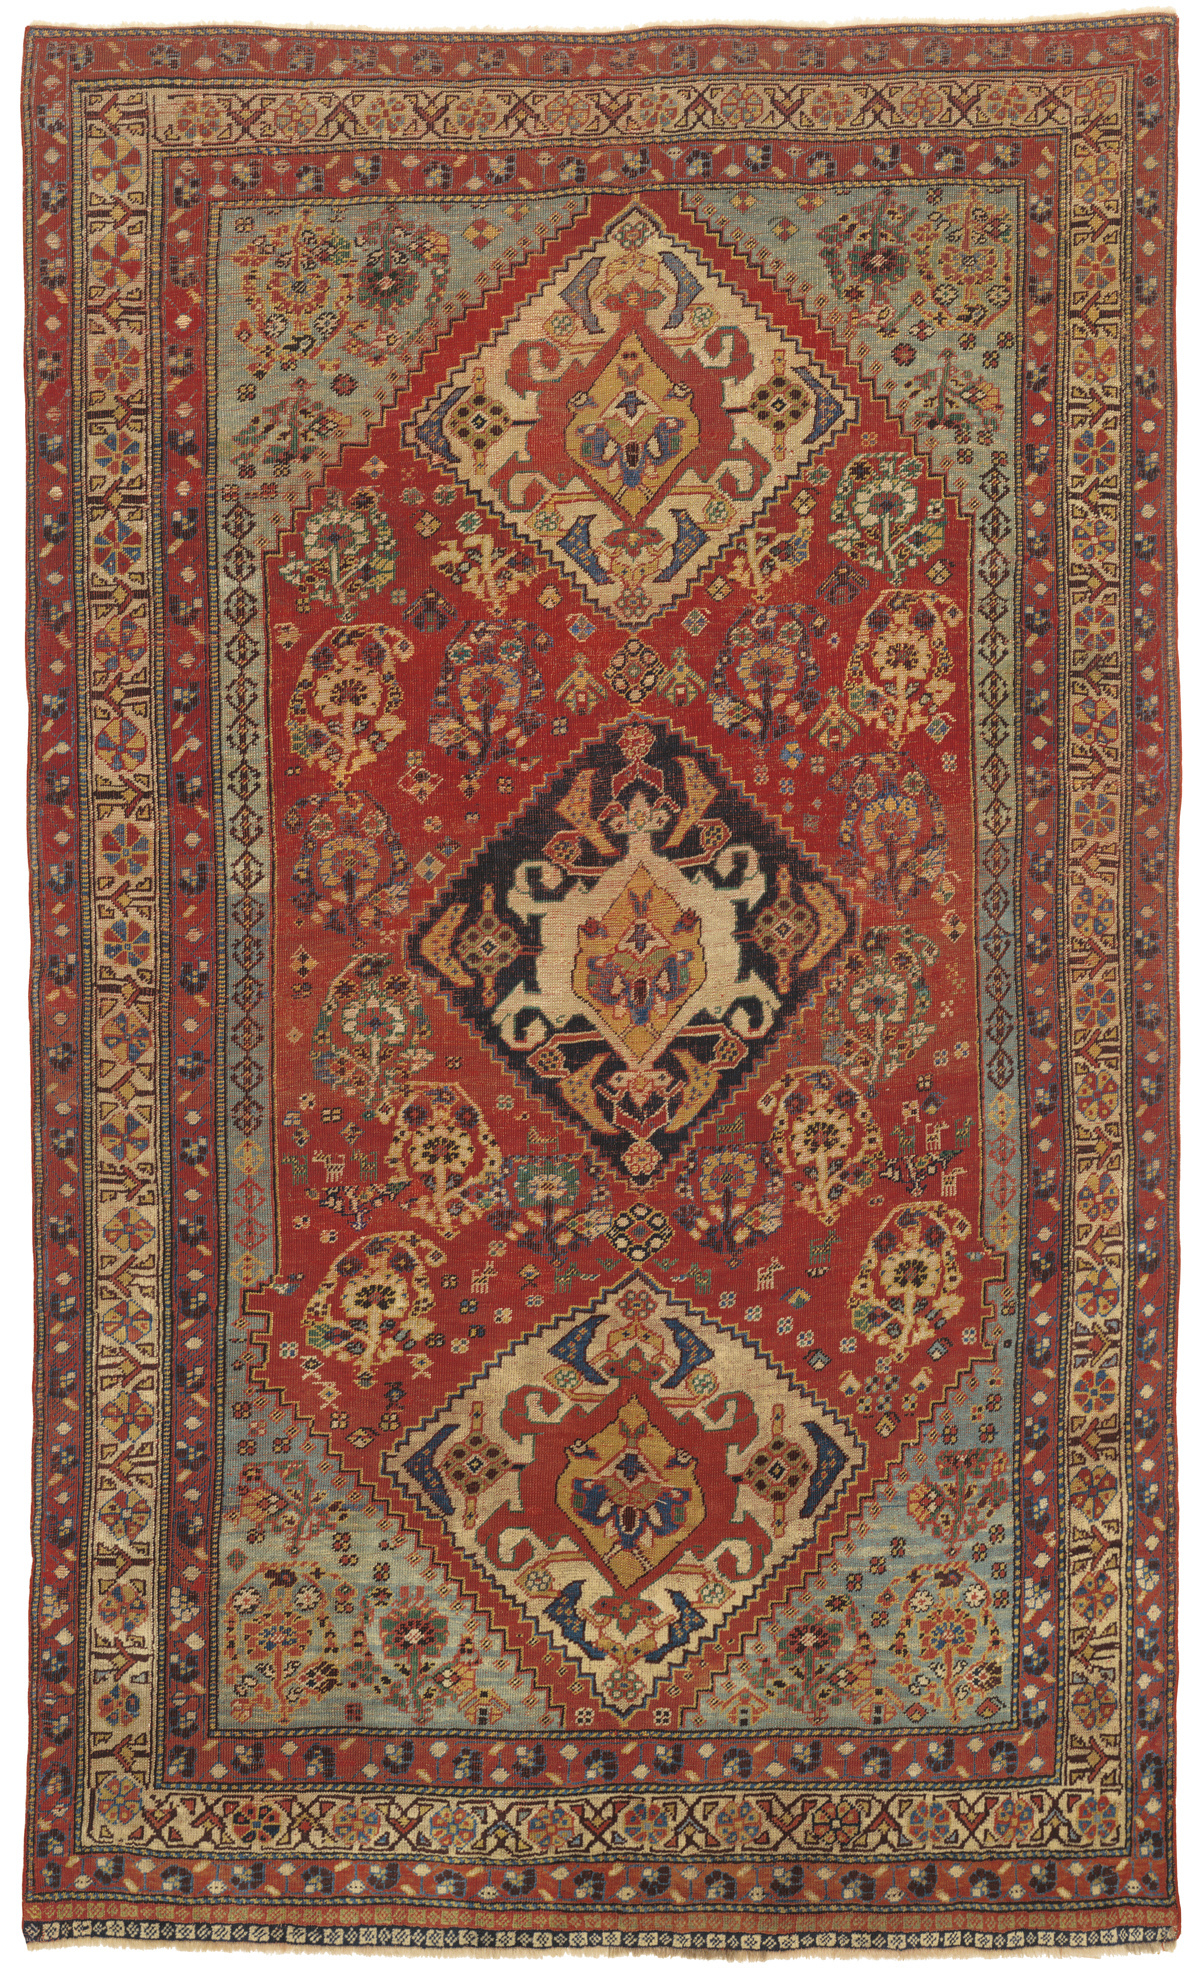 Captivating Claremont Rug Company Exhibits U201cBest Of The Best Antique Rugs Sold In 2014u201d  | Business Wire